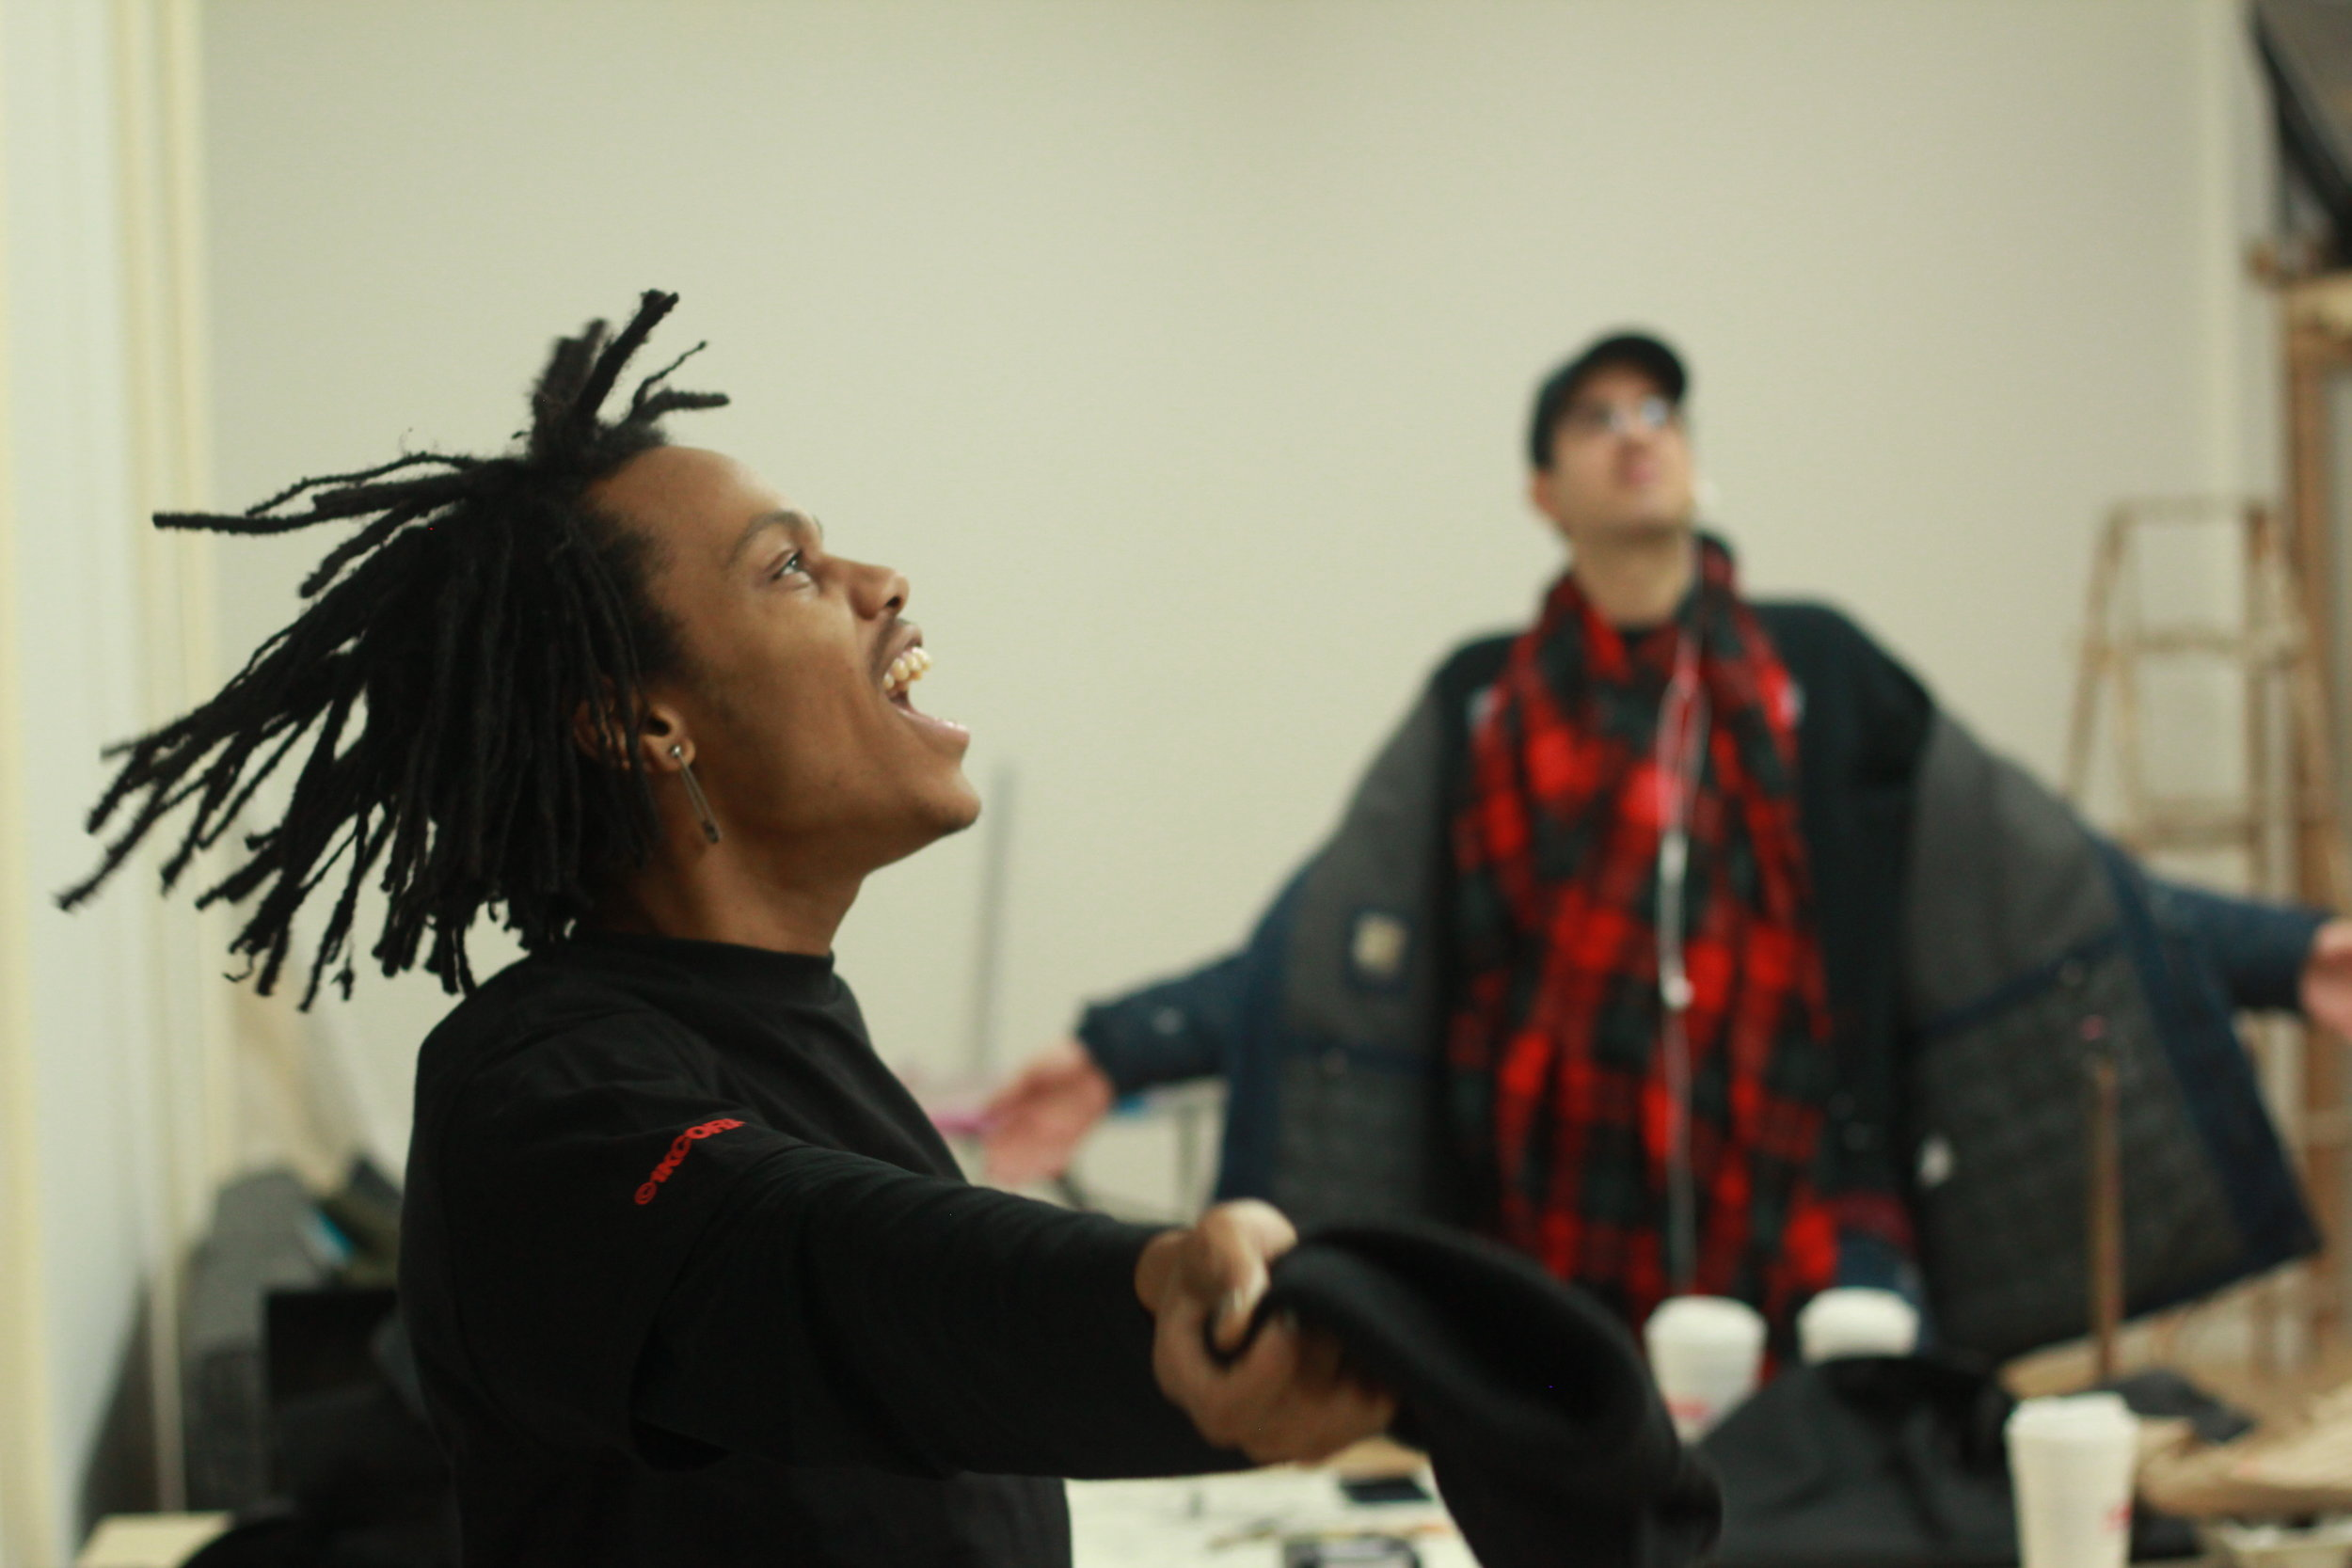 Casper and Demetrious take a dance break in the first month of building our permanent space